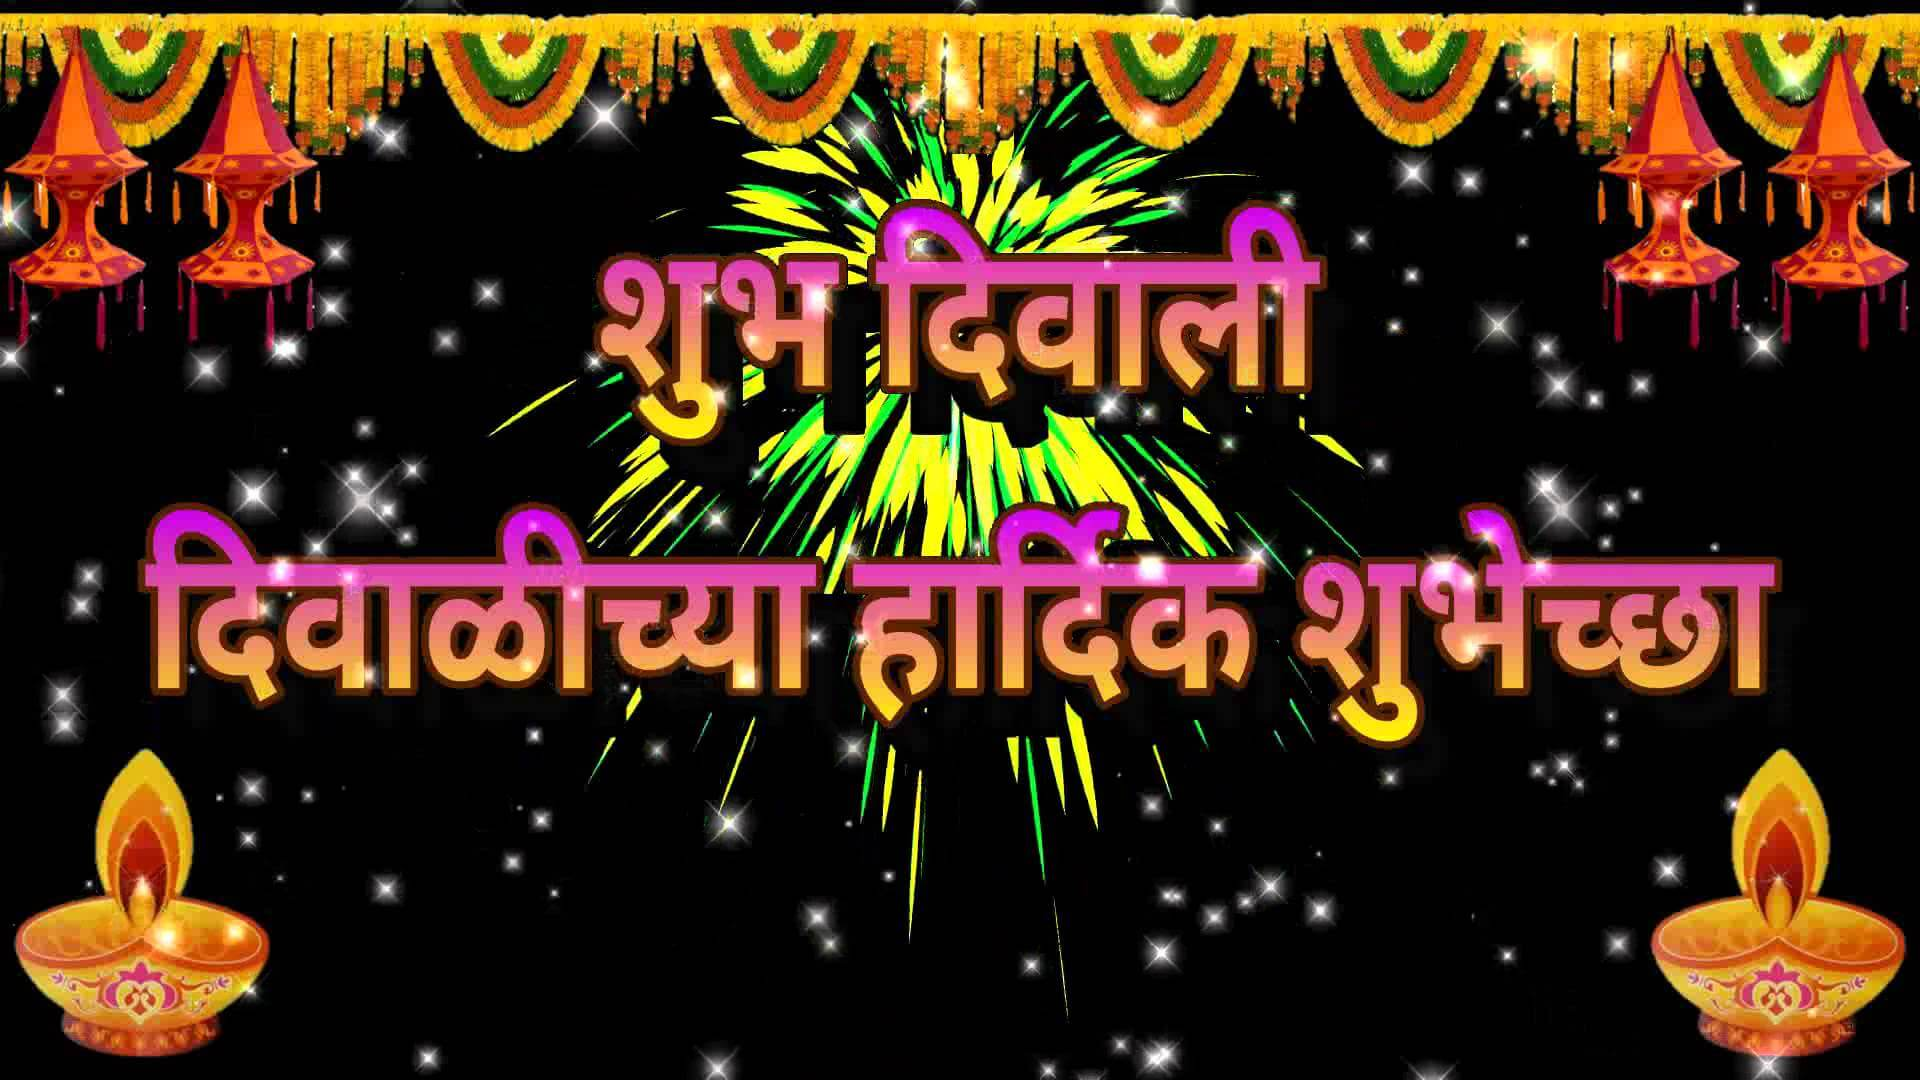 2019 Happy diwali images in marathi wishes pics photo download